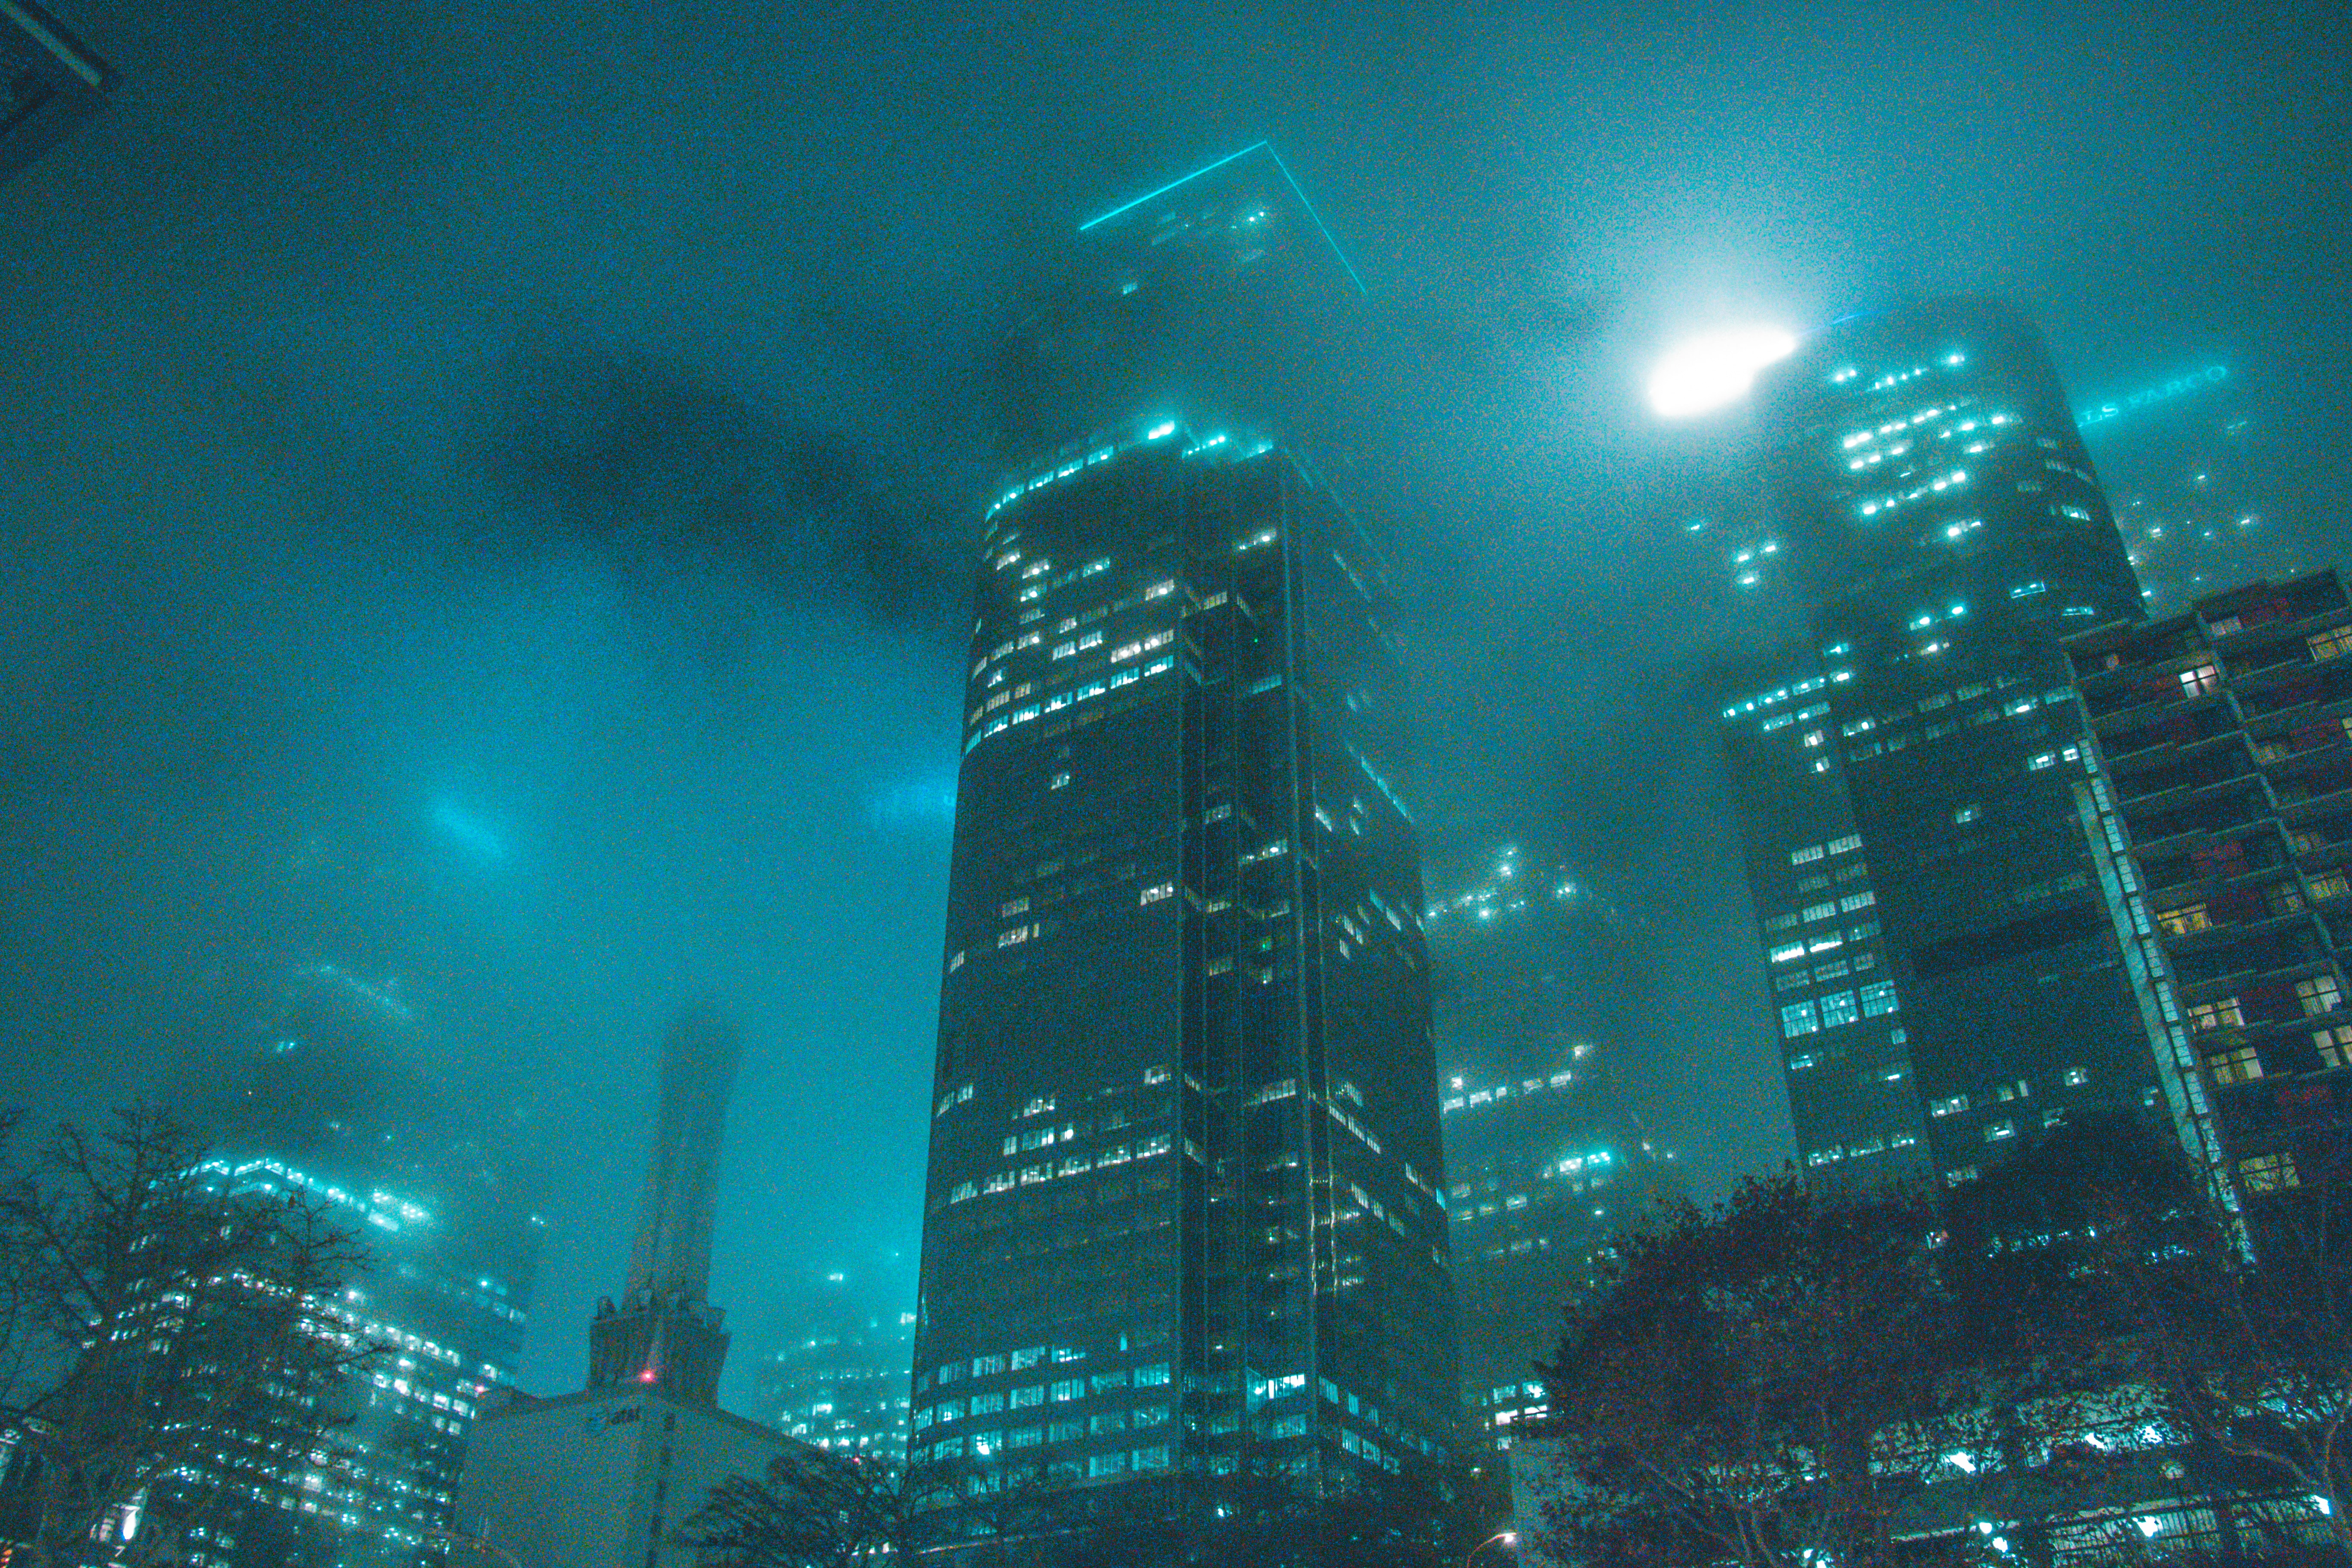 High-rise building beside buildings during night photo